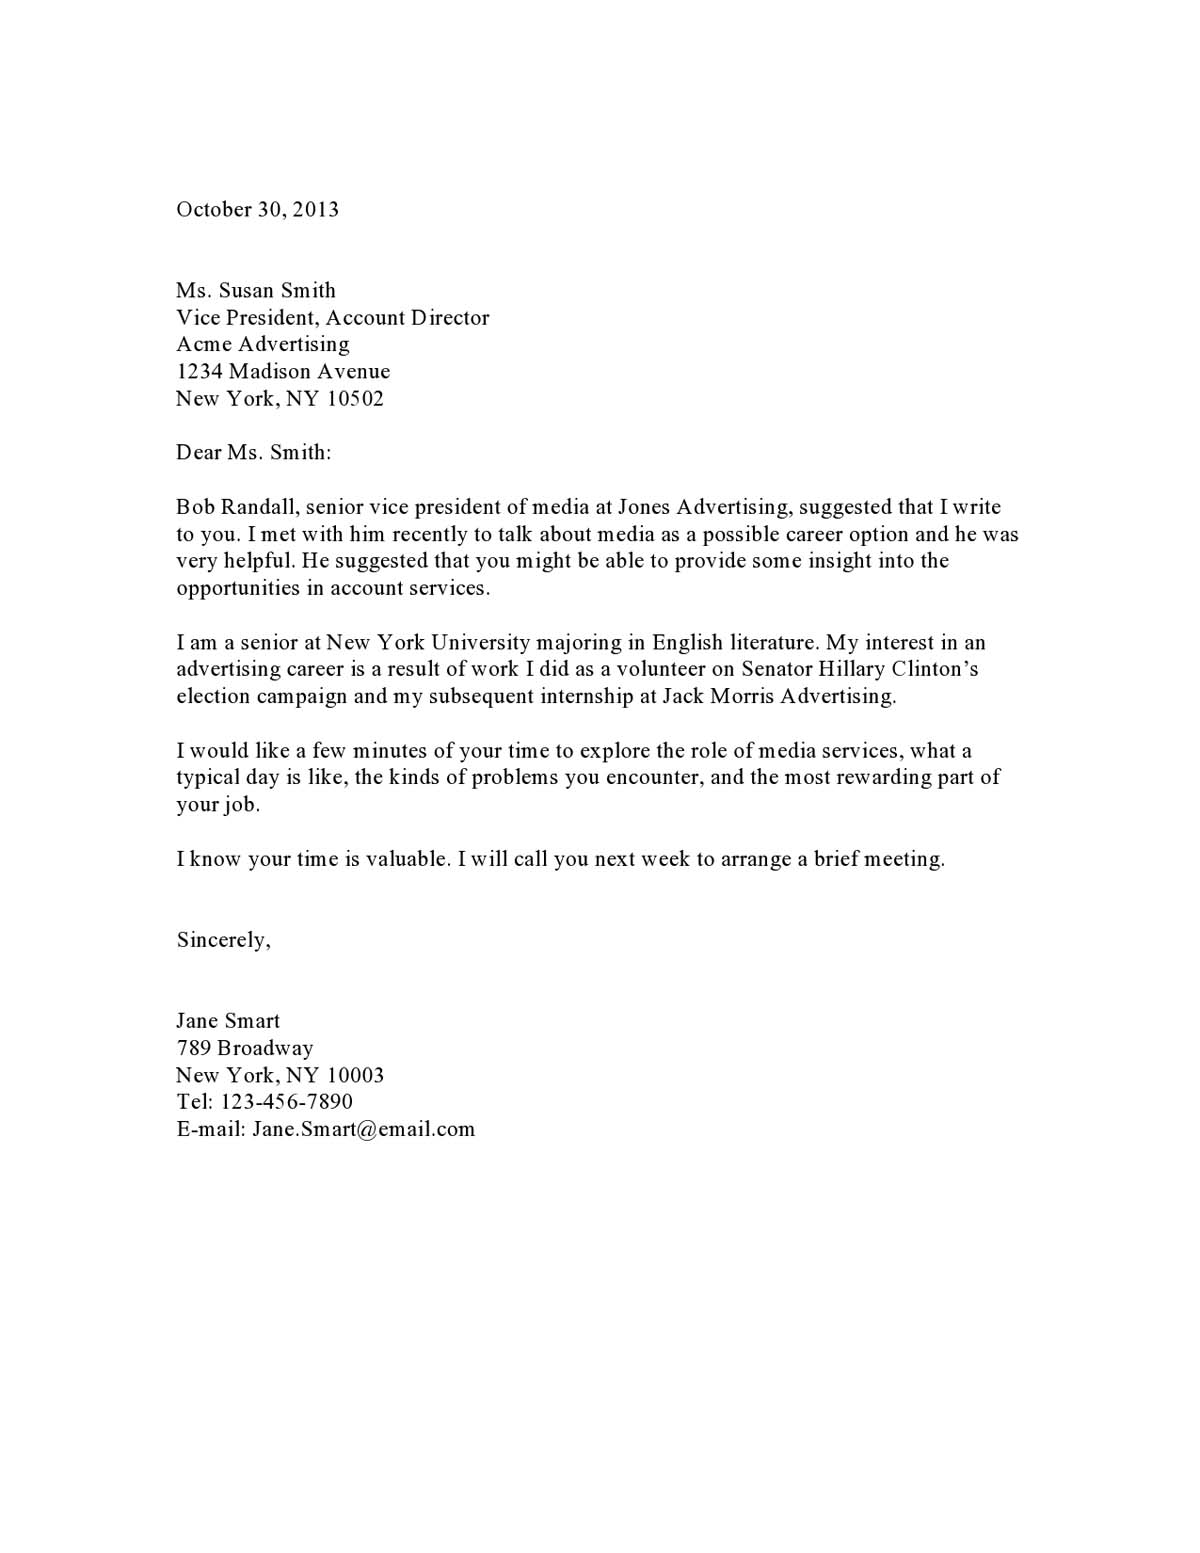 cover letter fomat - sample cover letter for applying a job